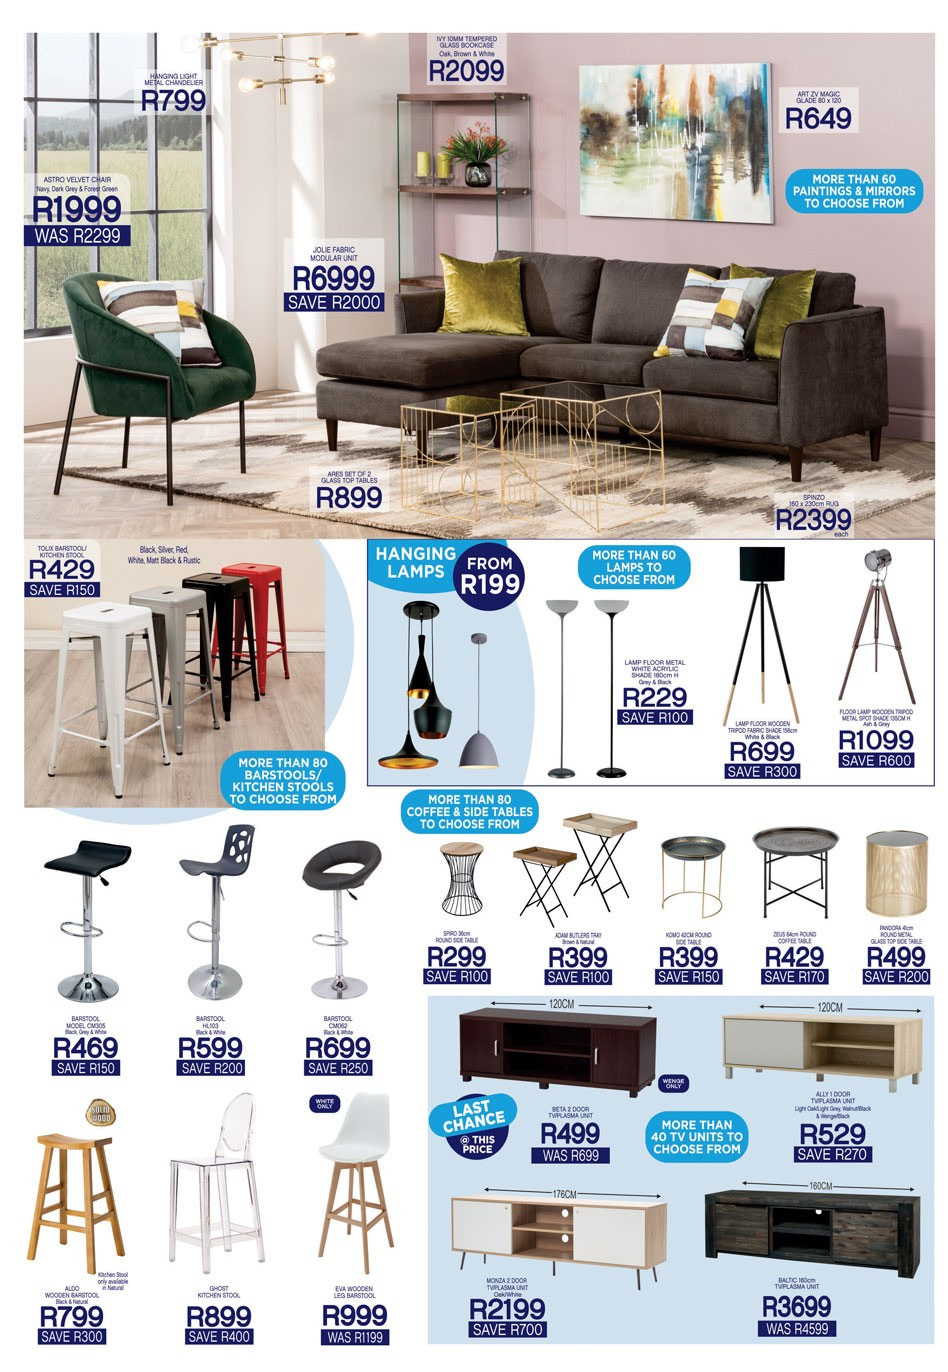 Decofurn Factory Shop catalogue . Page 2.